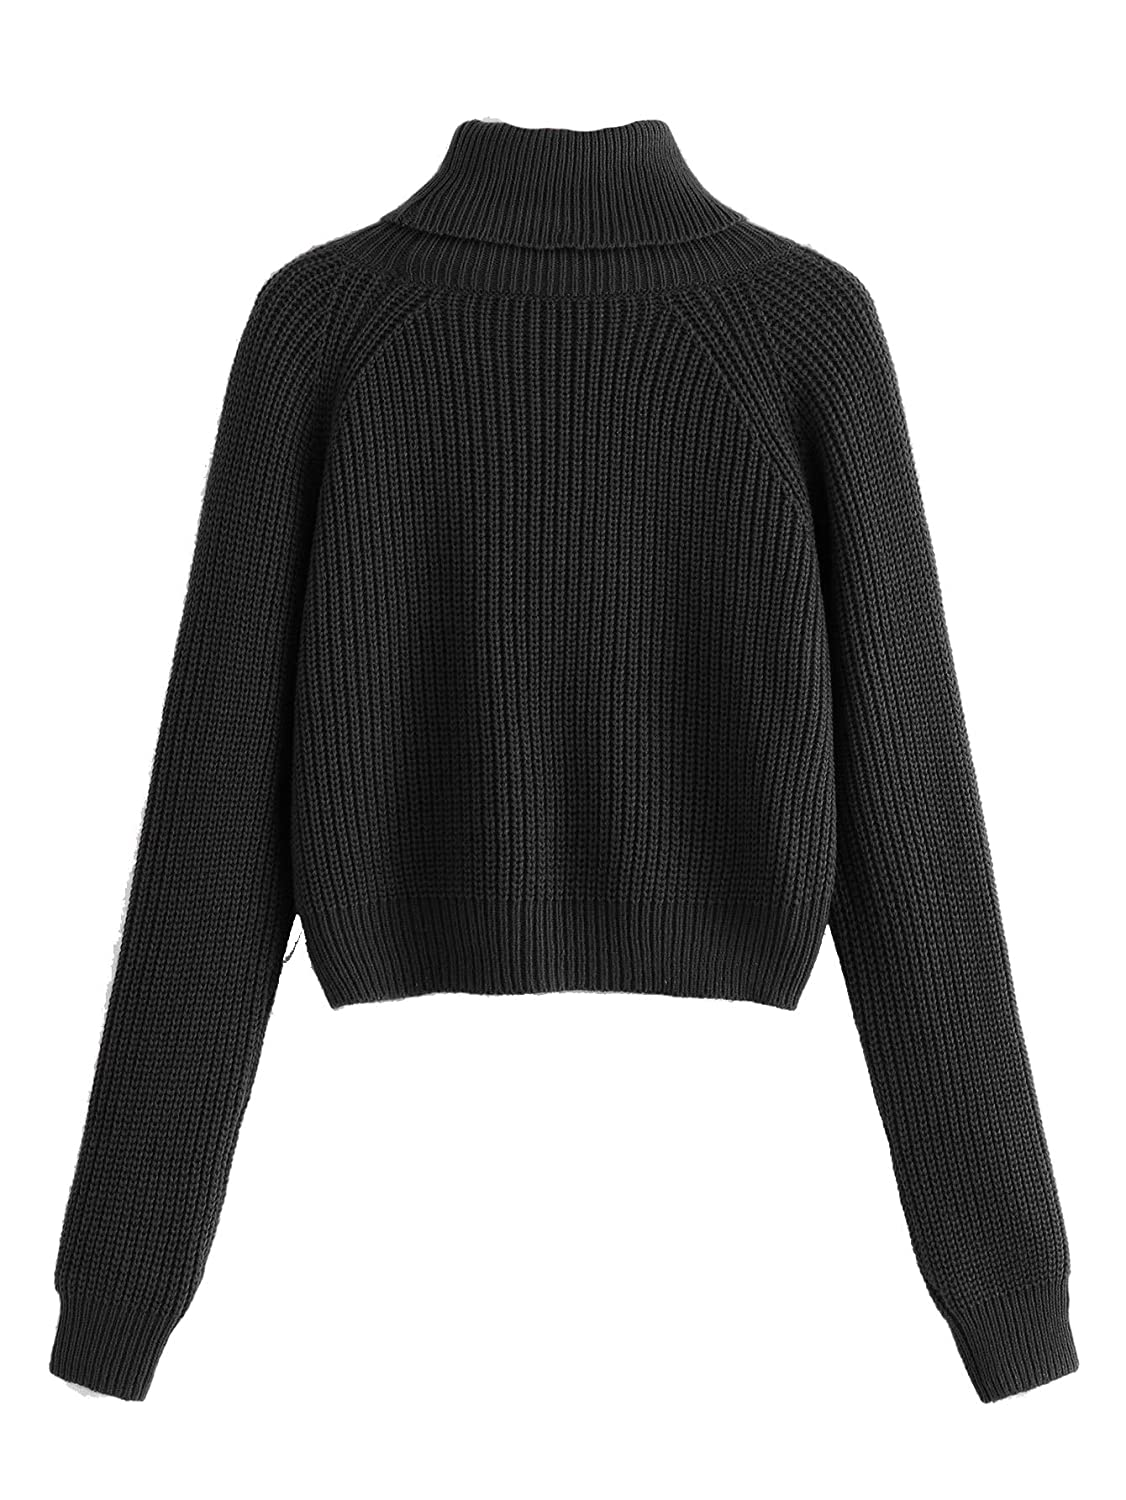 b7235646e1 Milumia Turtleneck Winter Sweaters Long Sleeves Fitted Crop Sweater Fall  Fashion Sexy Wear at Amazon Women s Clothing store